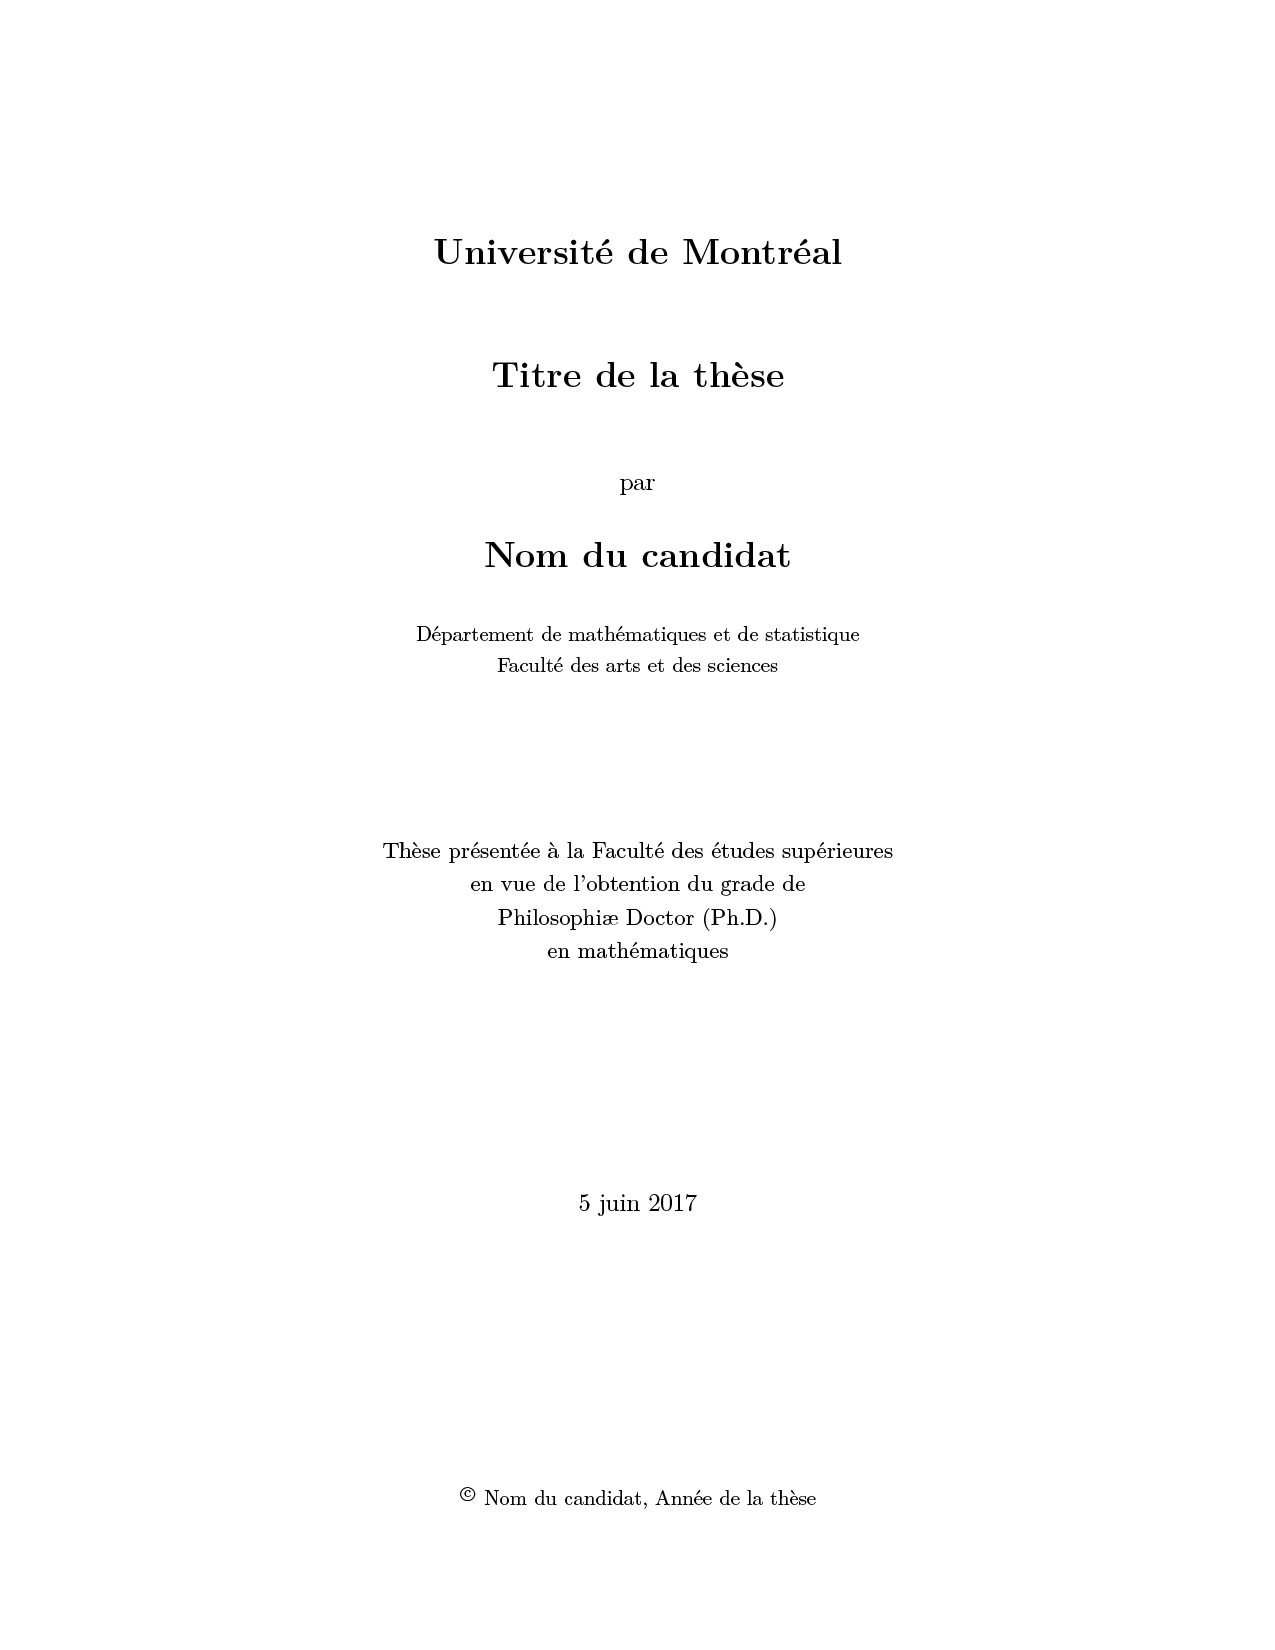 Benchmarking phd thesis